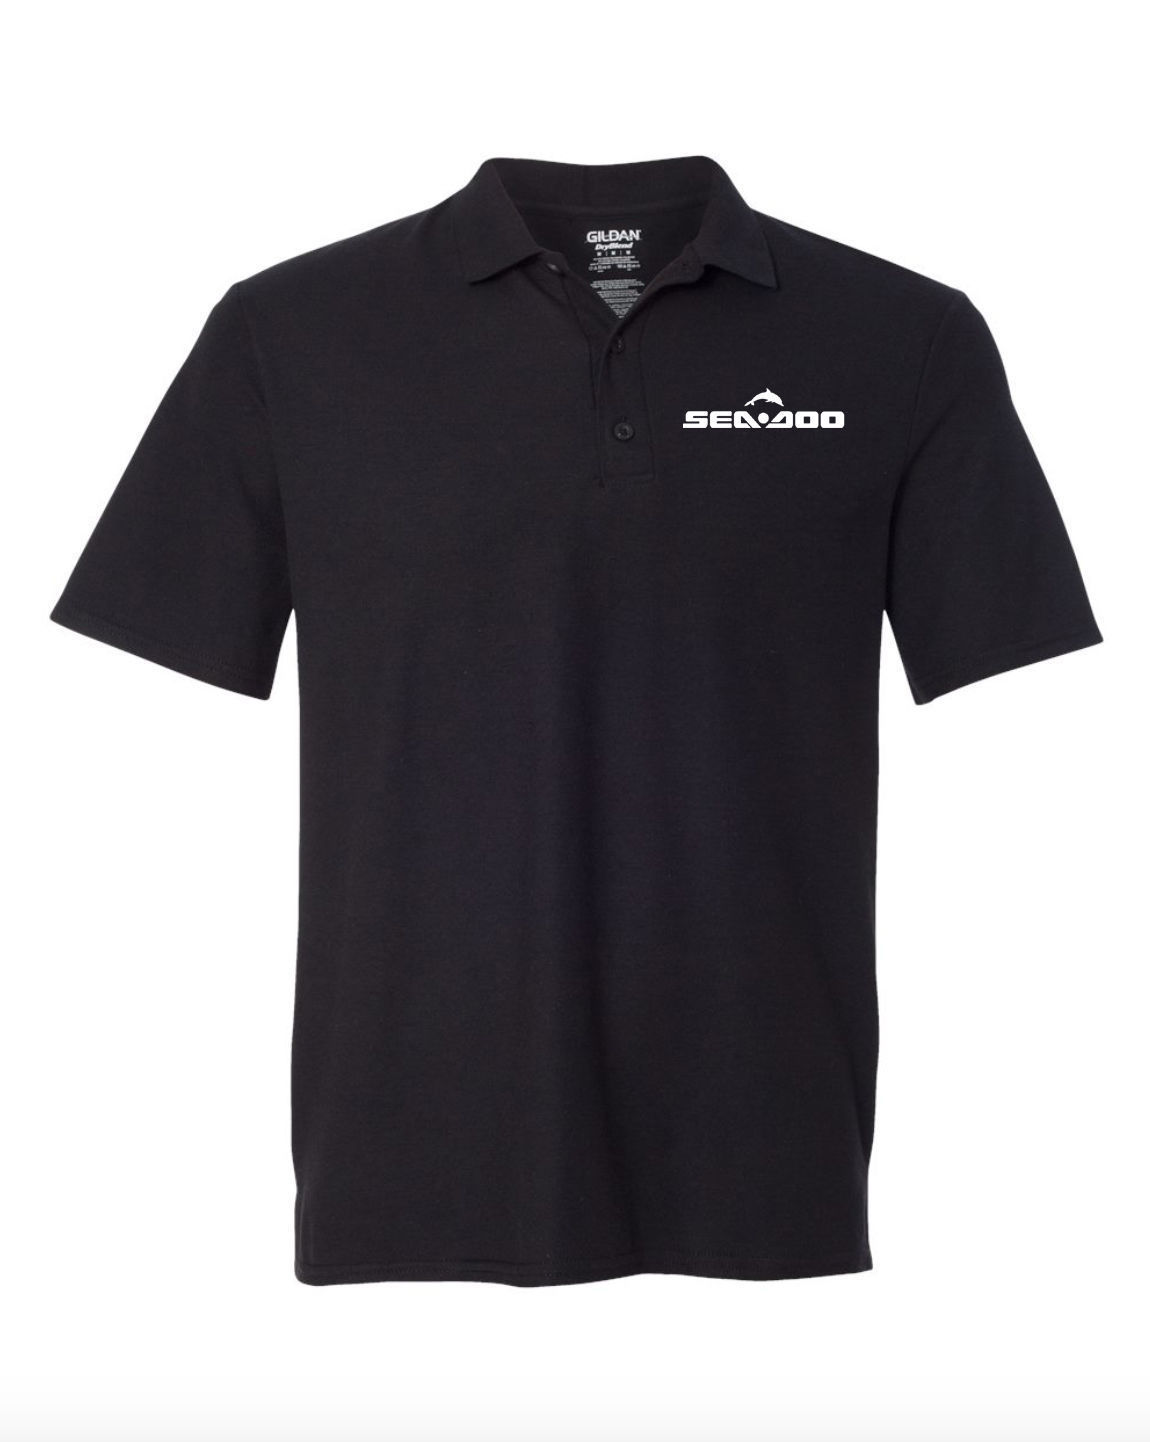 Seadoo Black POLO T-Shirt